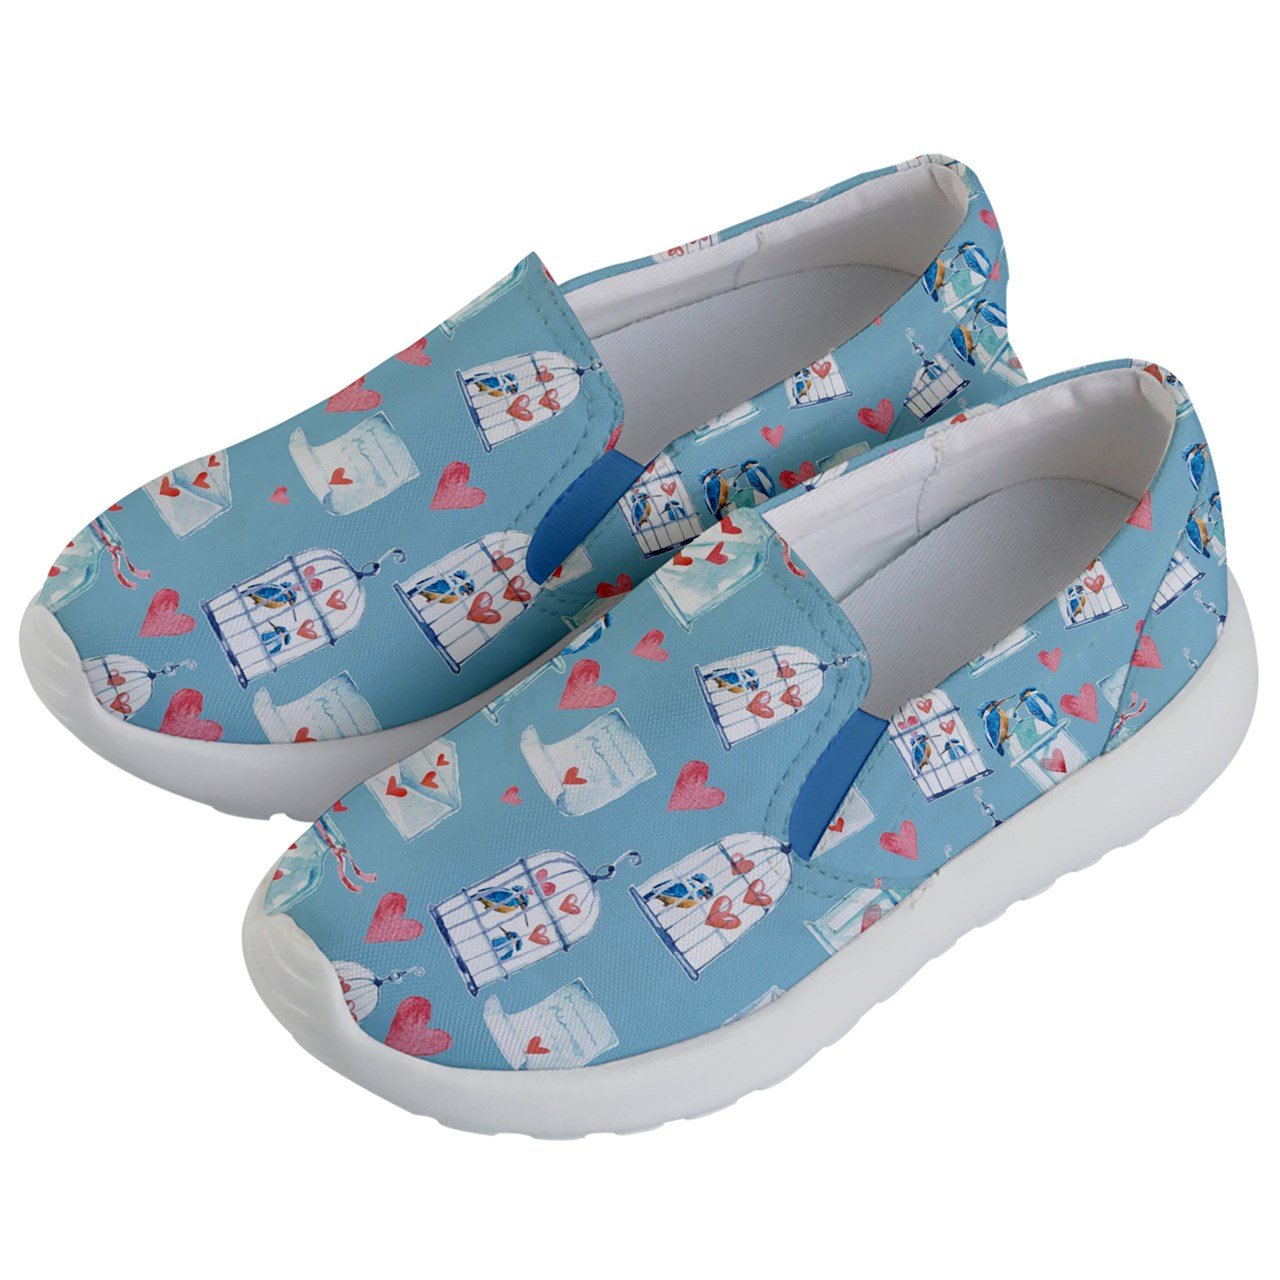 PattyCandy Kids & Toddlers Slip On Love Bird & Cage Lightweight Shoes-US 5.5Y by PattyCandy (Image #2)